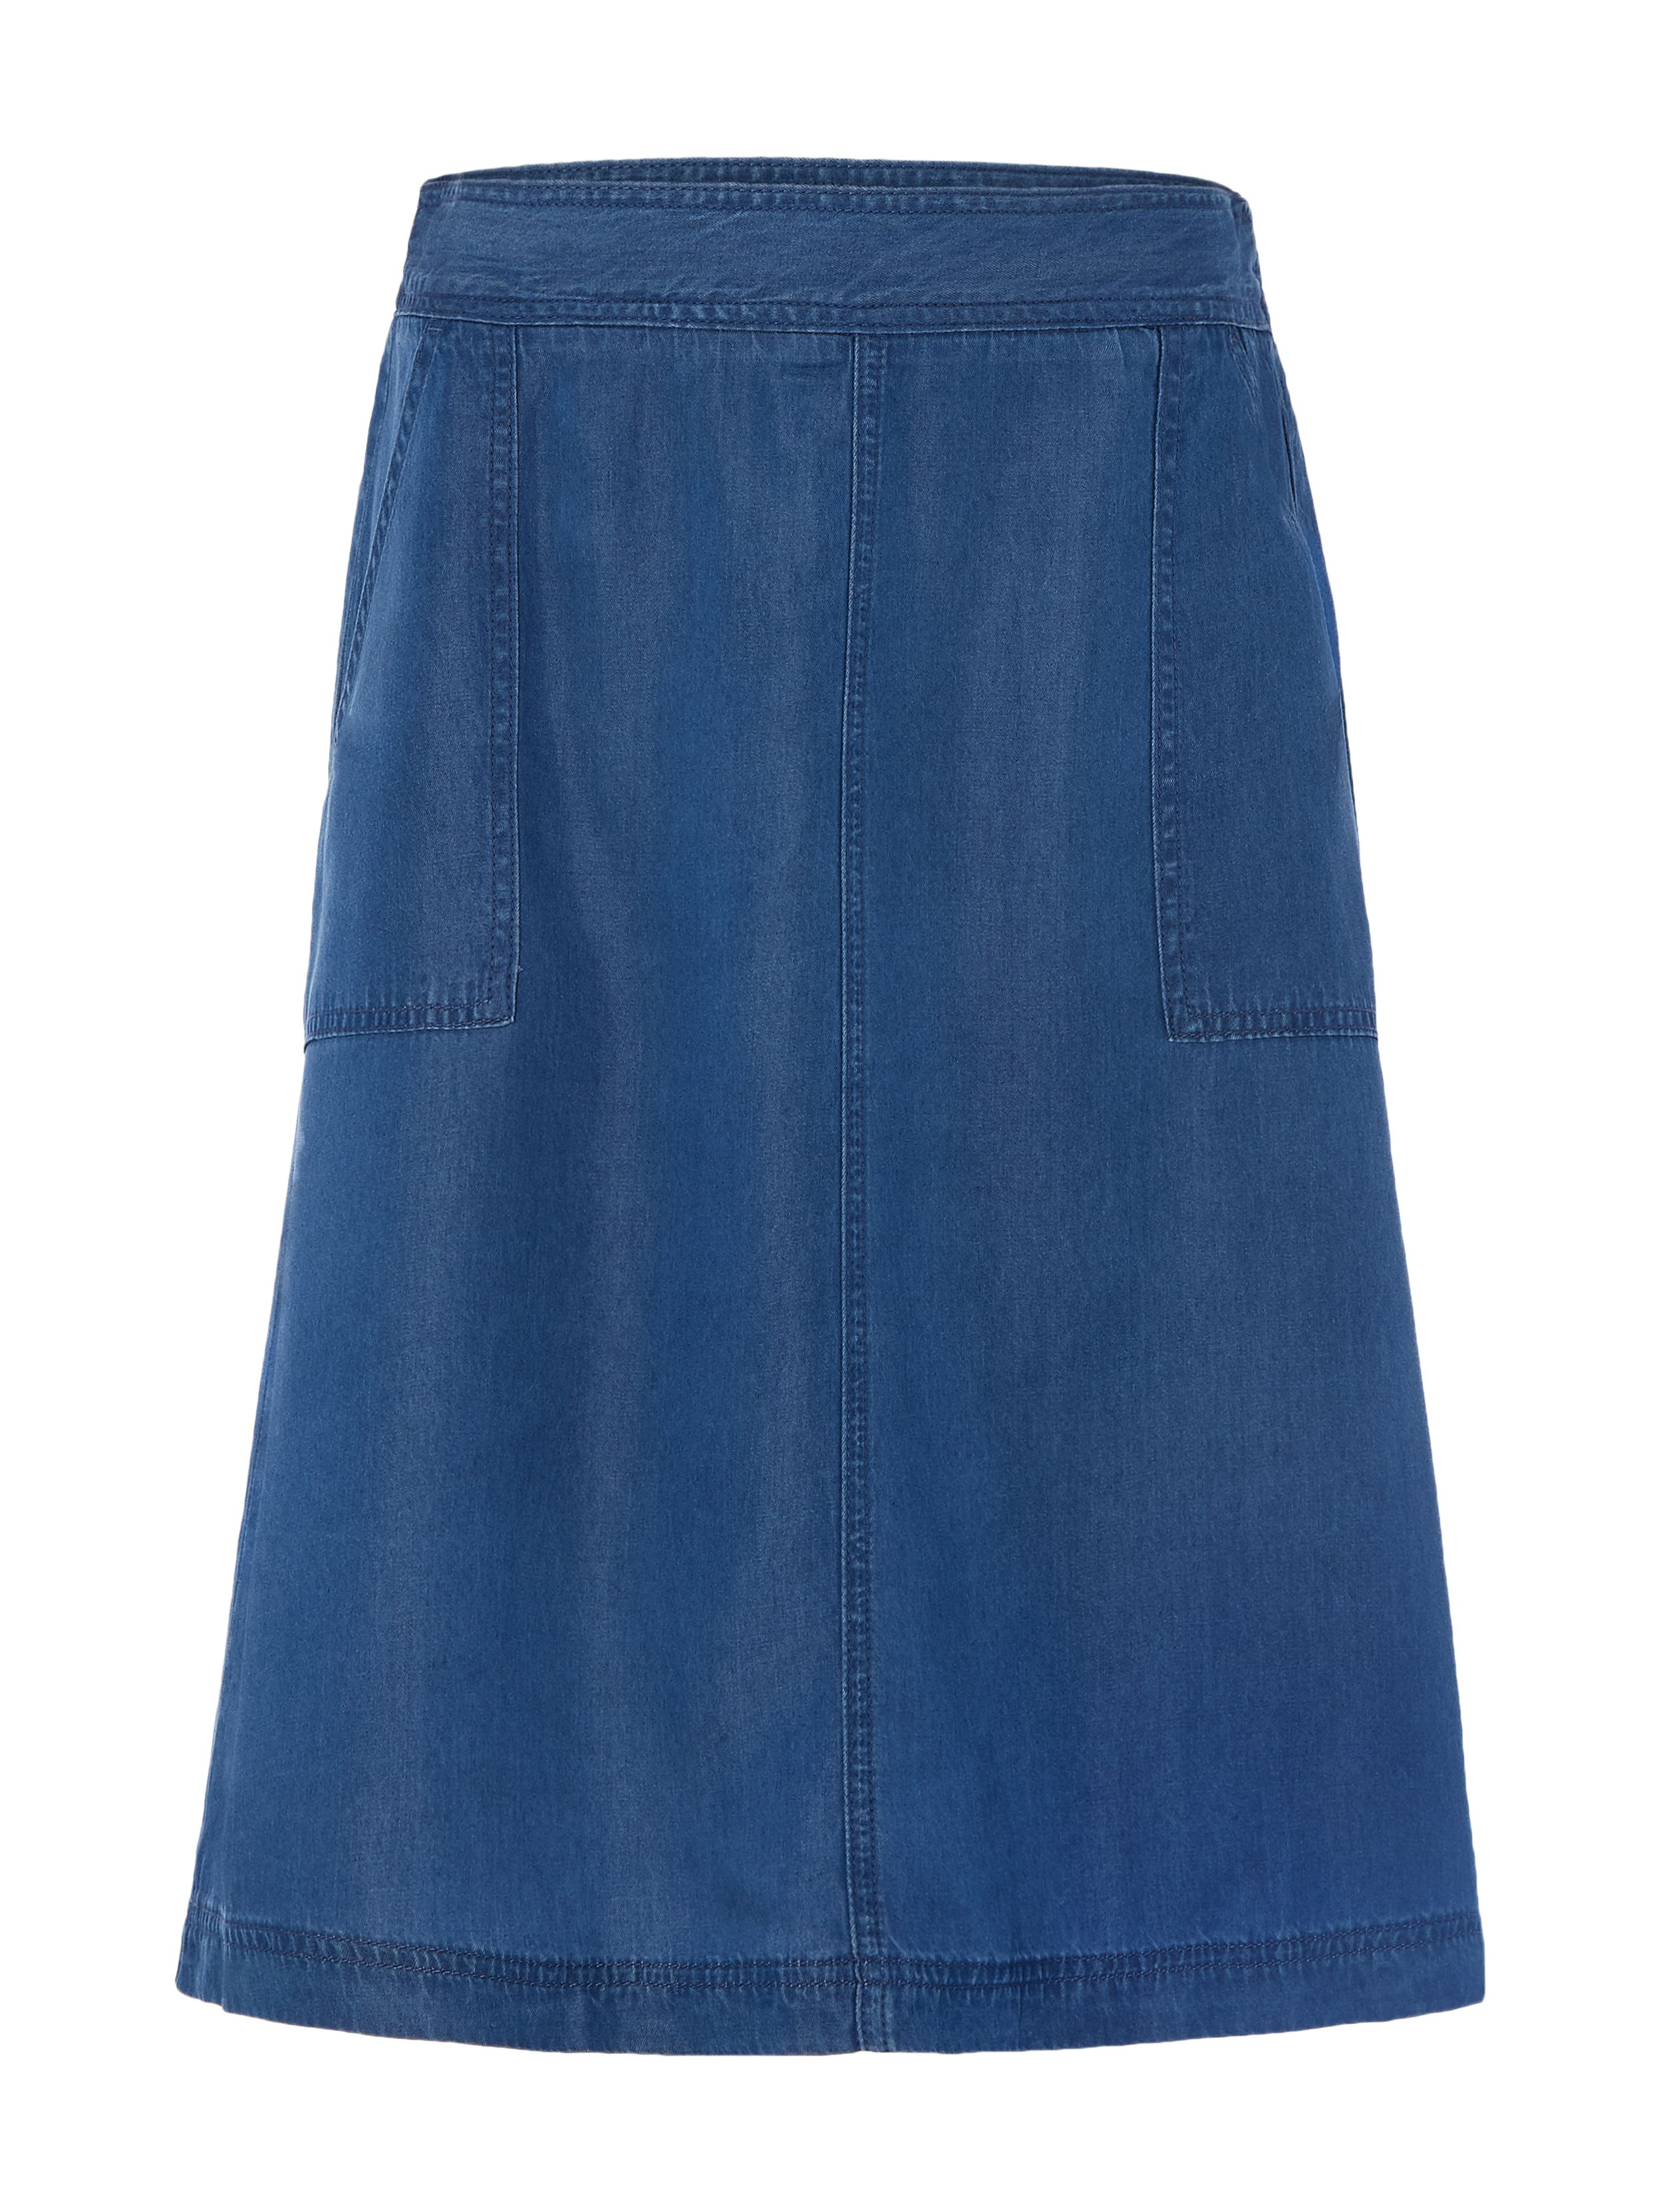 White Stuff Peppercorn Skirt, Blue